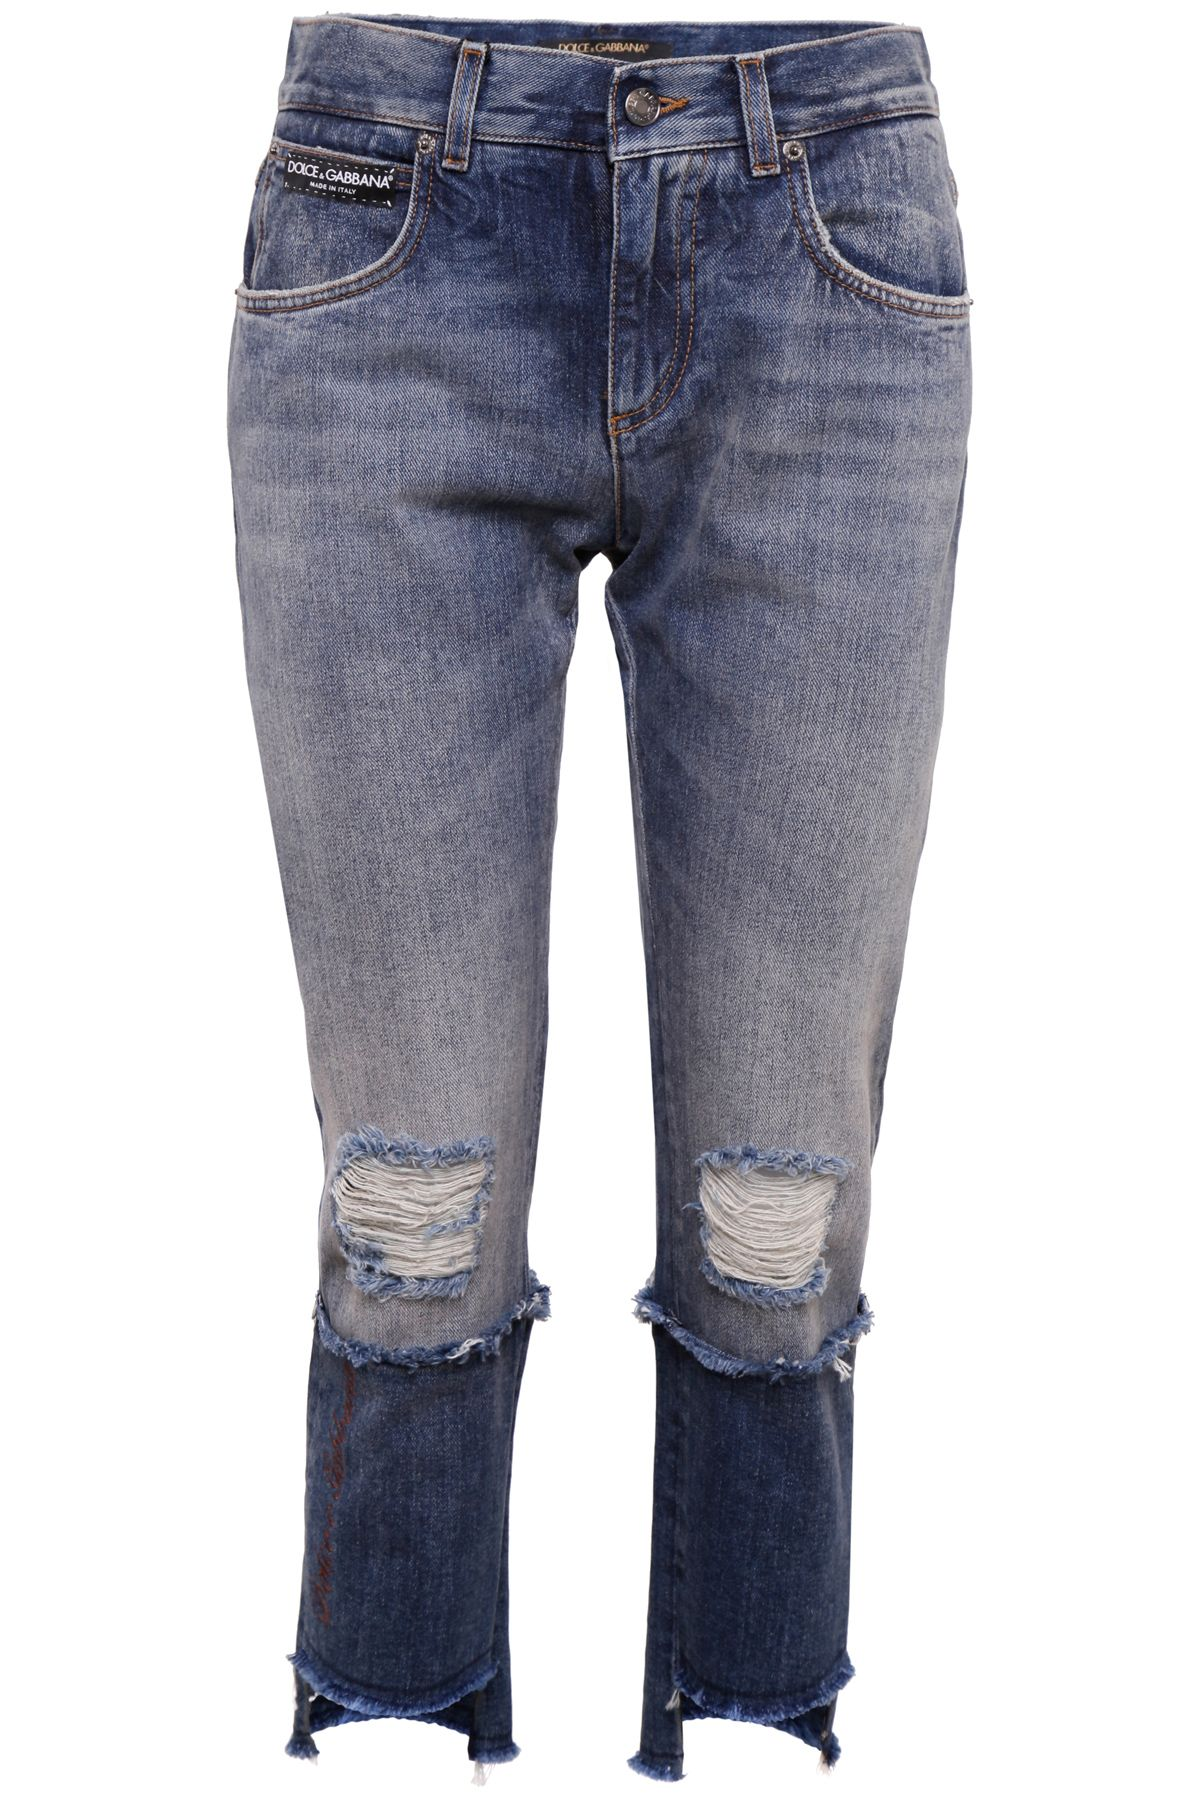 Jeans With Patches 9953168